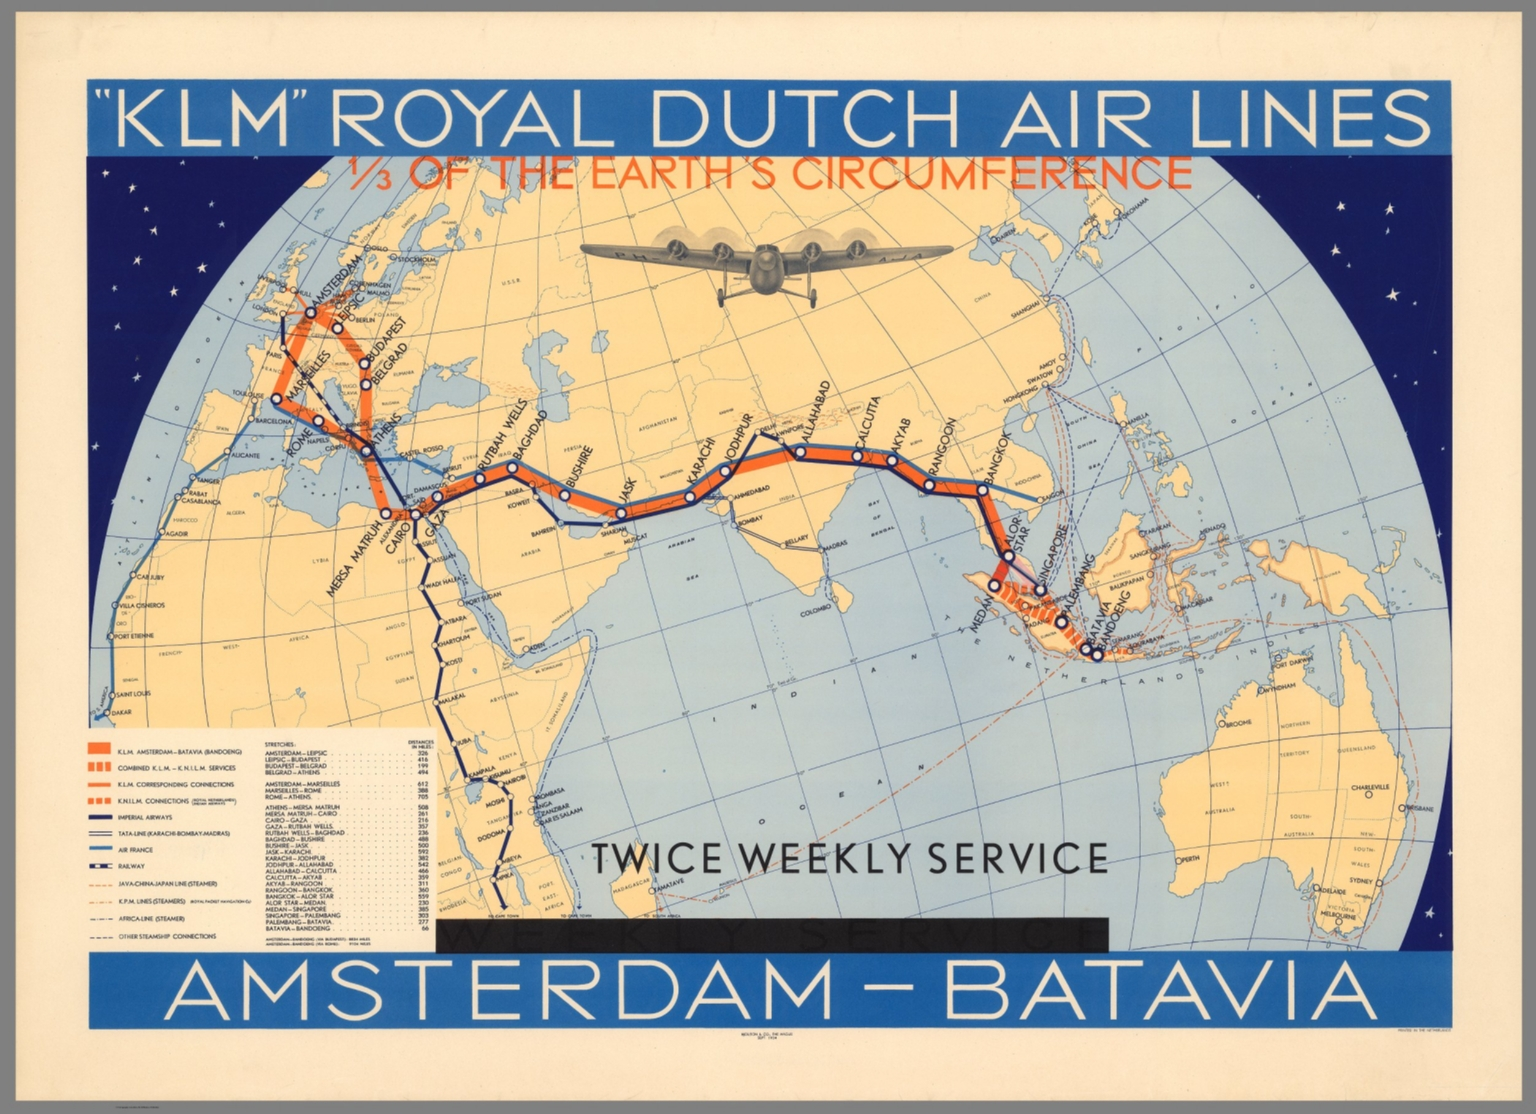 KLM Royal Dutch Airlines Amsterdam-Batavia Weekly Service - David ...